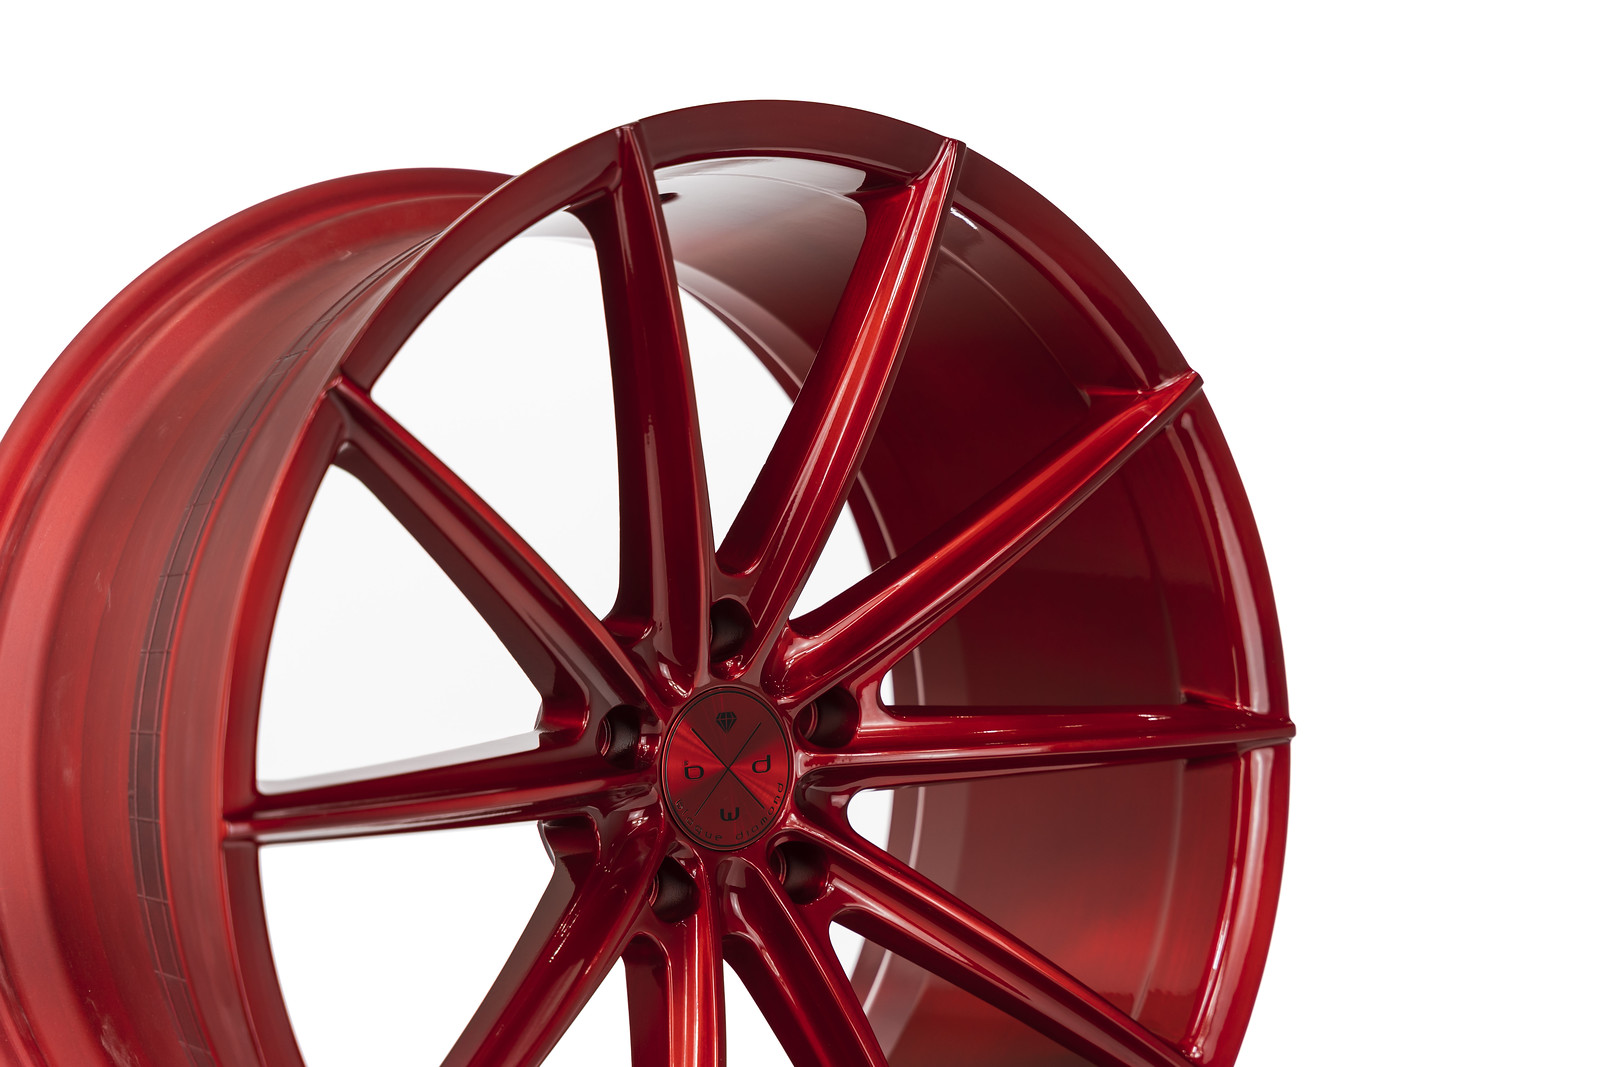 BD11_Custom_Finish_Gloss_Anodized_Red_3